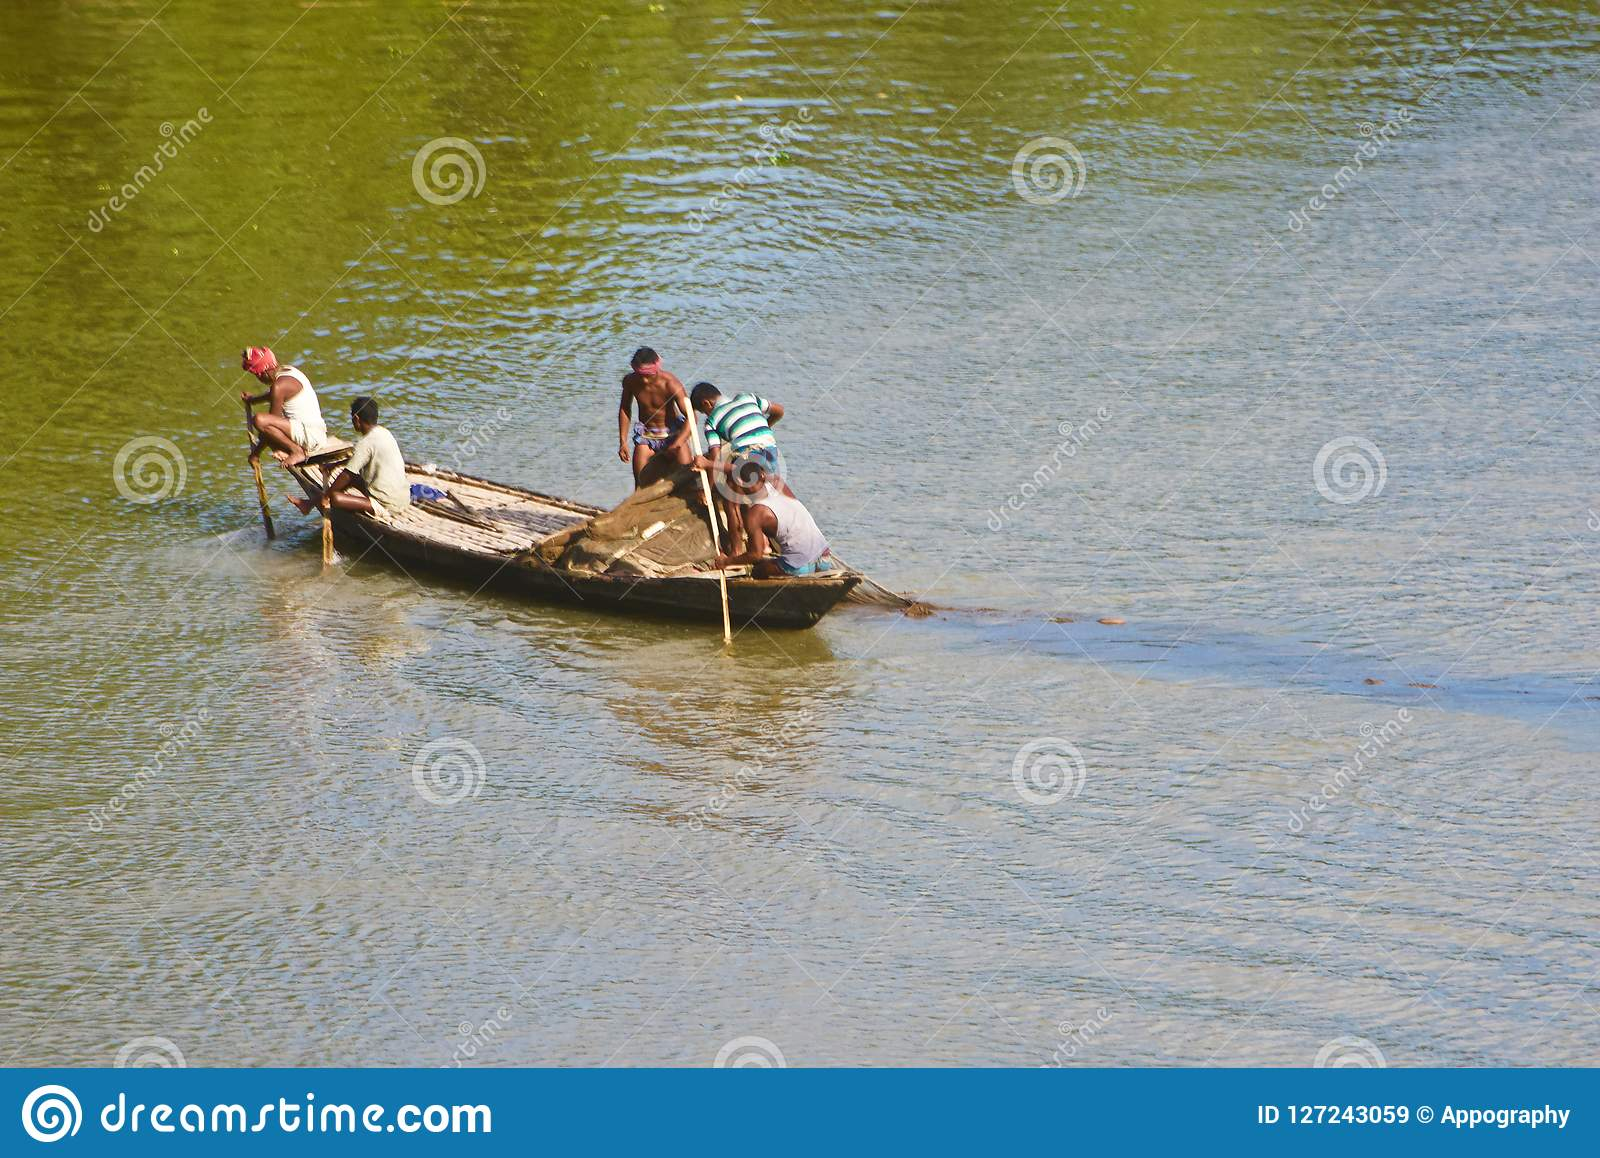 Bangladeshi people fishing on a boat in the river unique photo